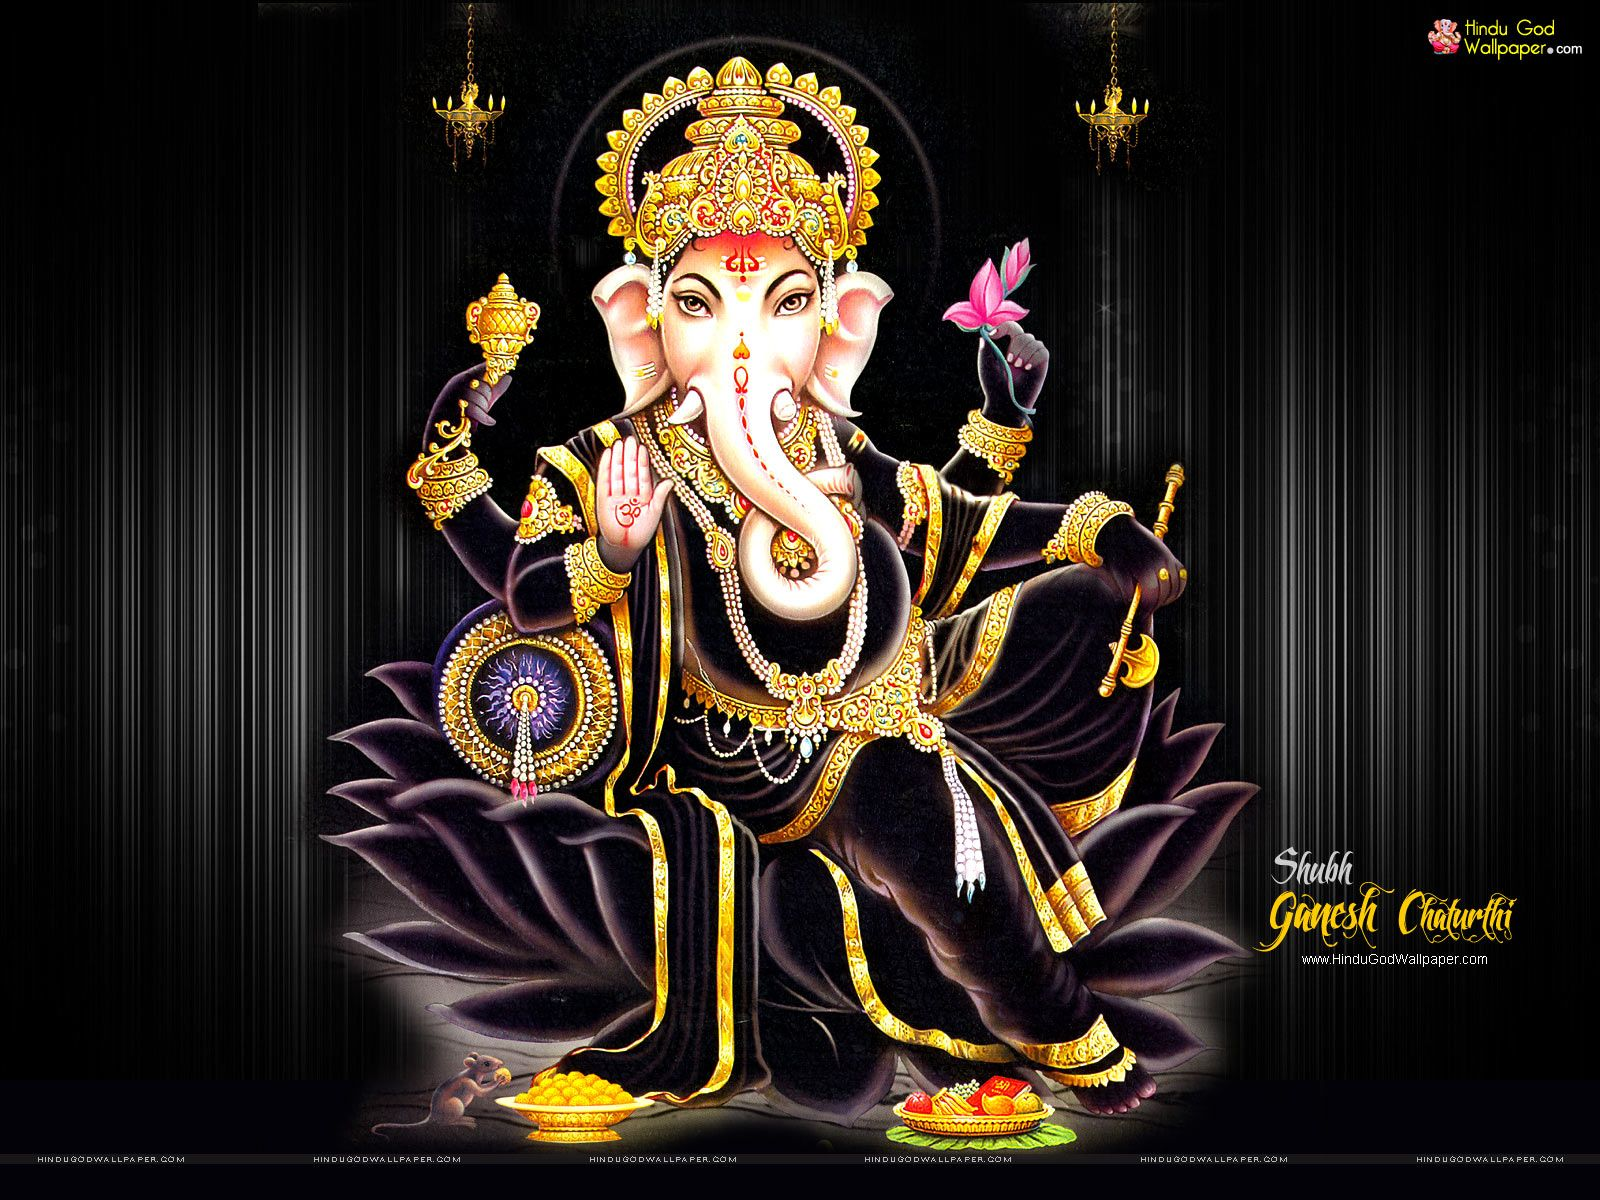 Happy Ganesh Chaturthi Hd Wallpapers Download Happy Ganesh Chaturthi Ganesh Chaturthi Images Ganesh Images